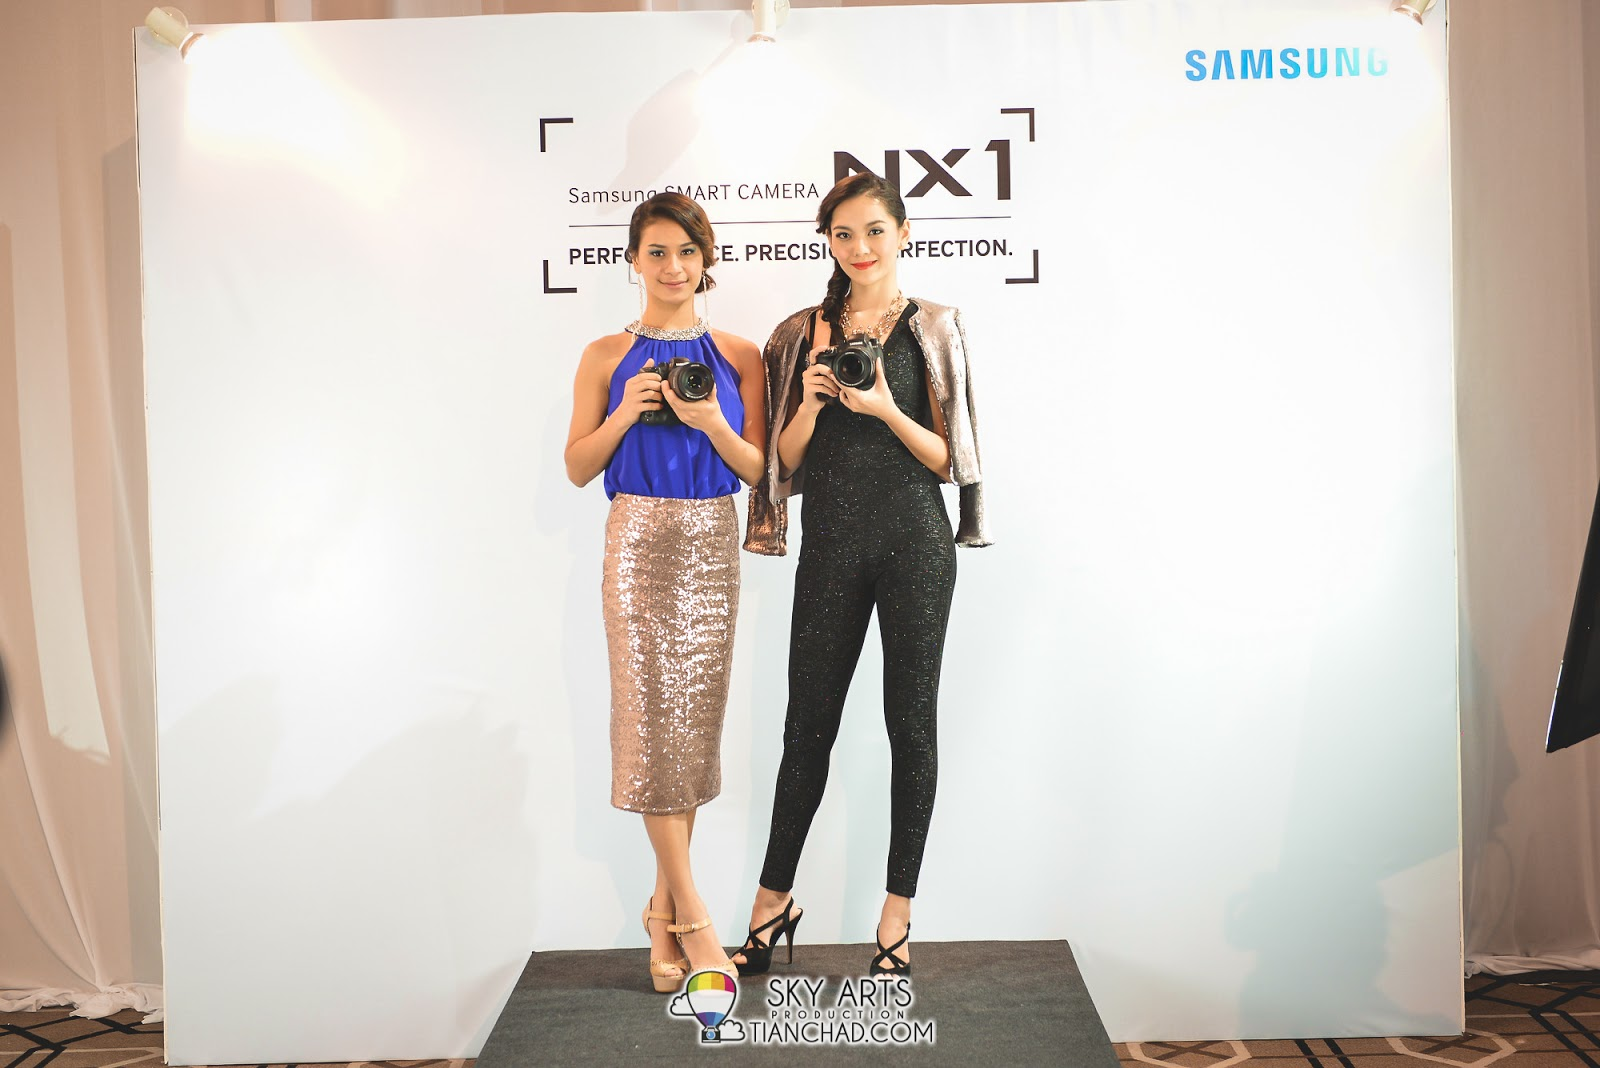 Two gorgeous models holding the Samsung NX1